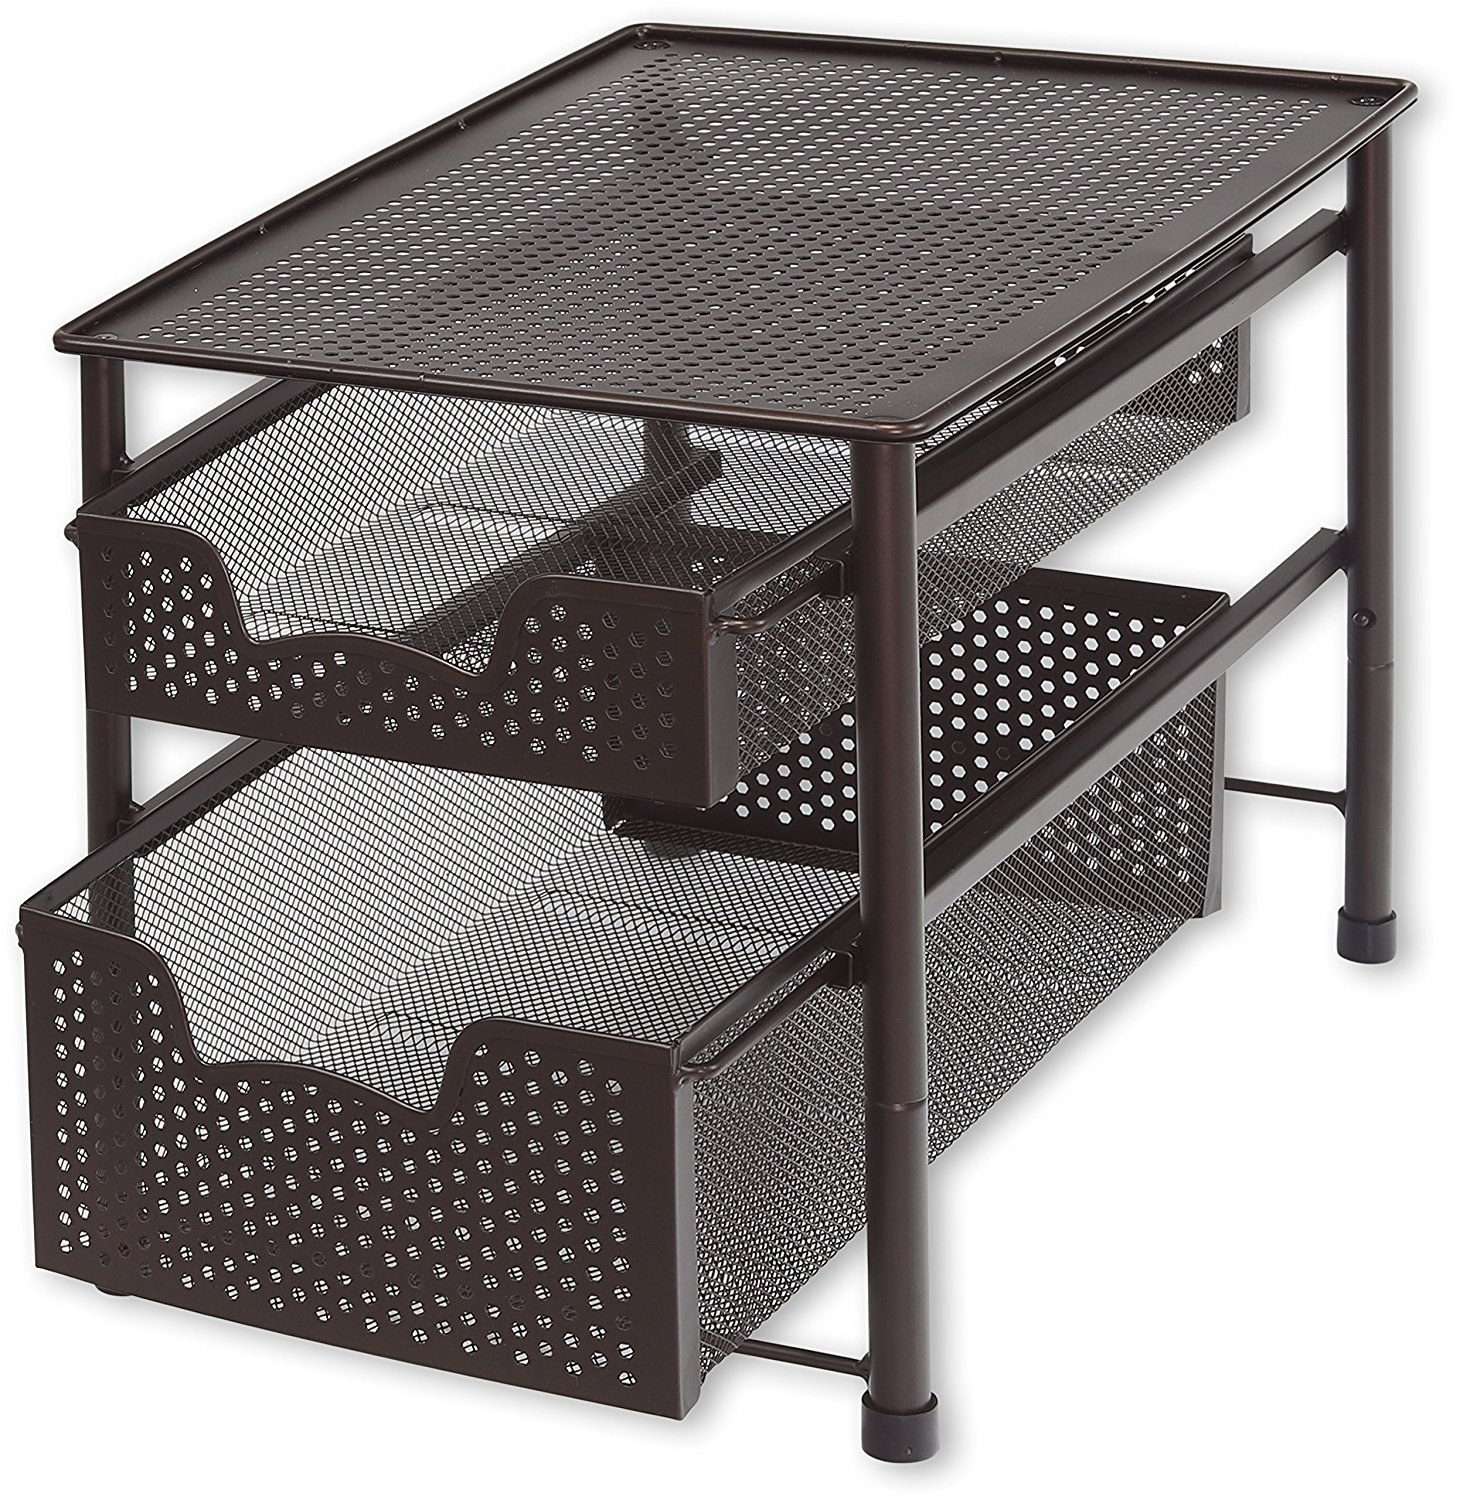 Simple Houseware Stackable 2 Tier Sliding Basket Organizer Drawer, Bronze CB-002-2